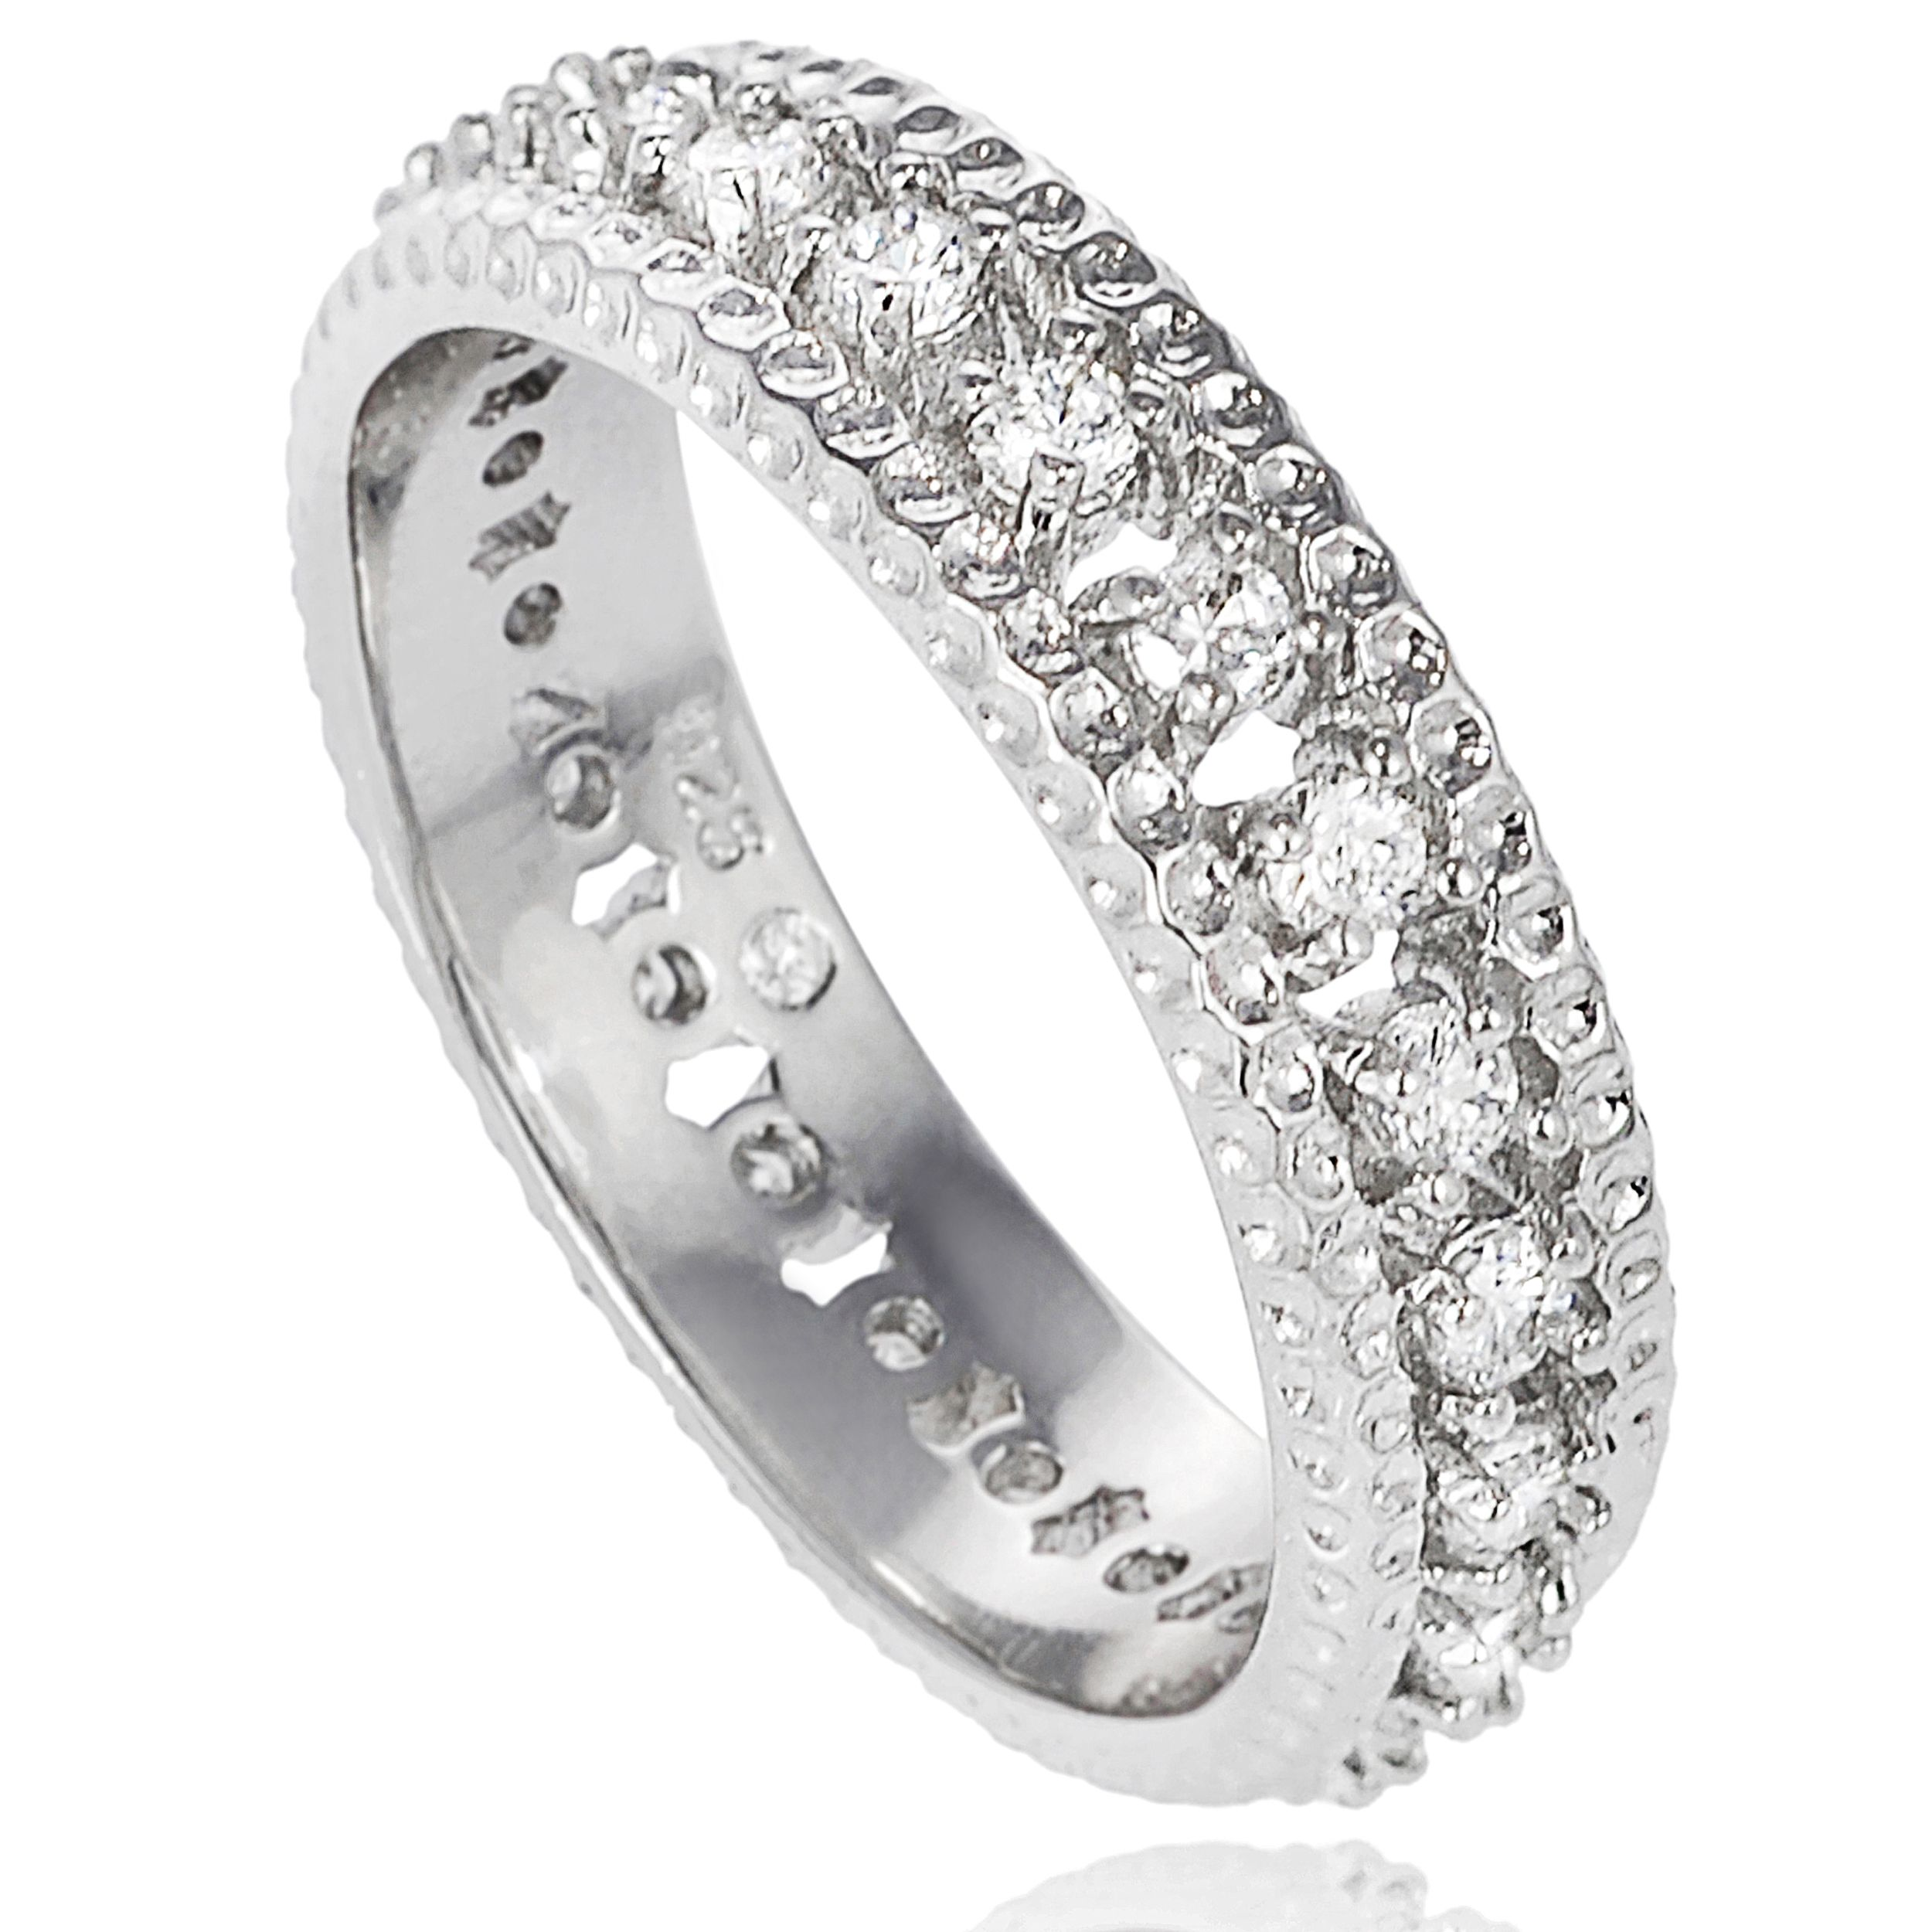 Tressa cubic zirconia band  Sterling silver jewelry  Click here for ring sizing guide